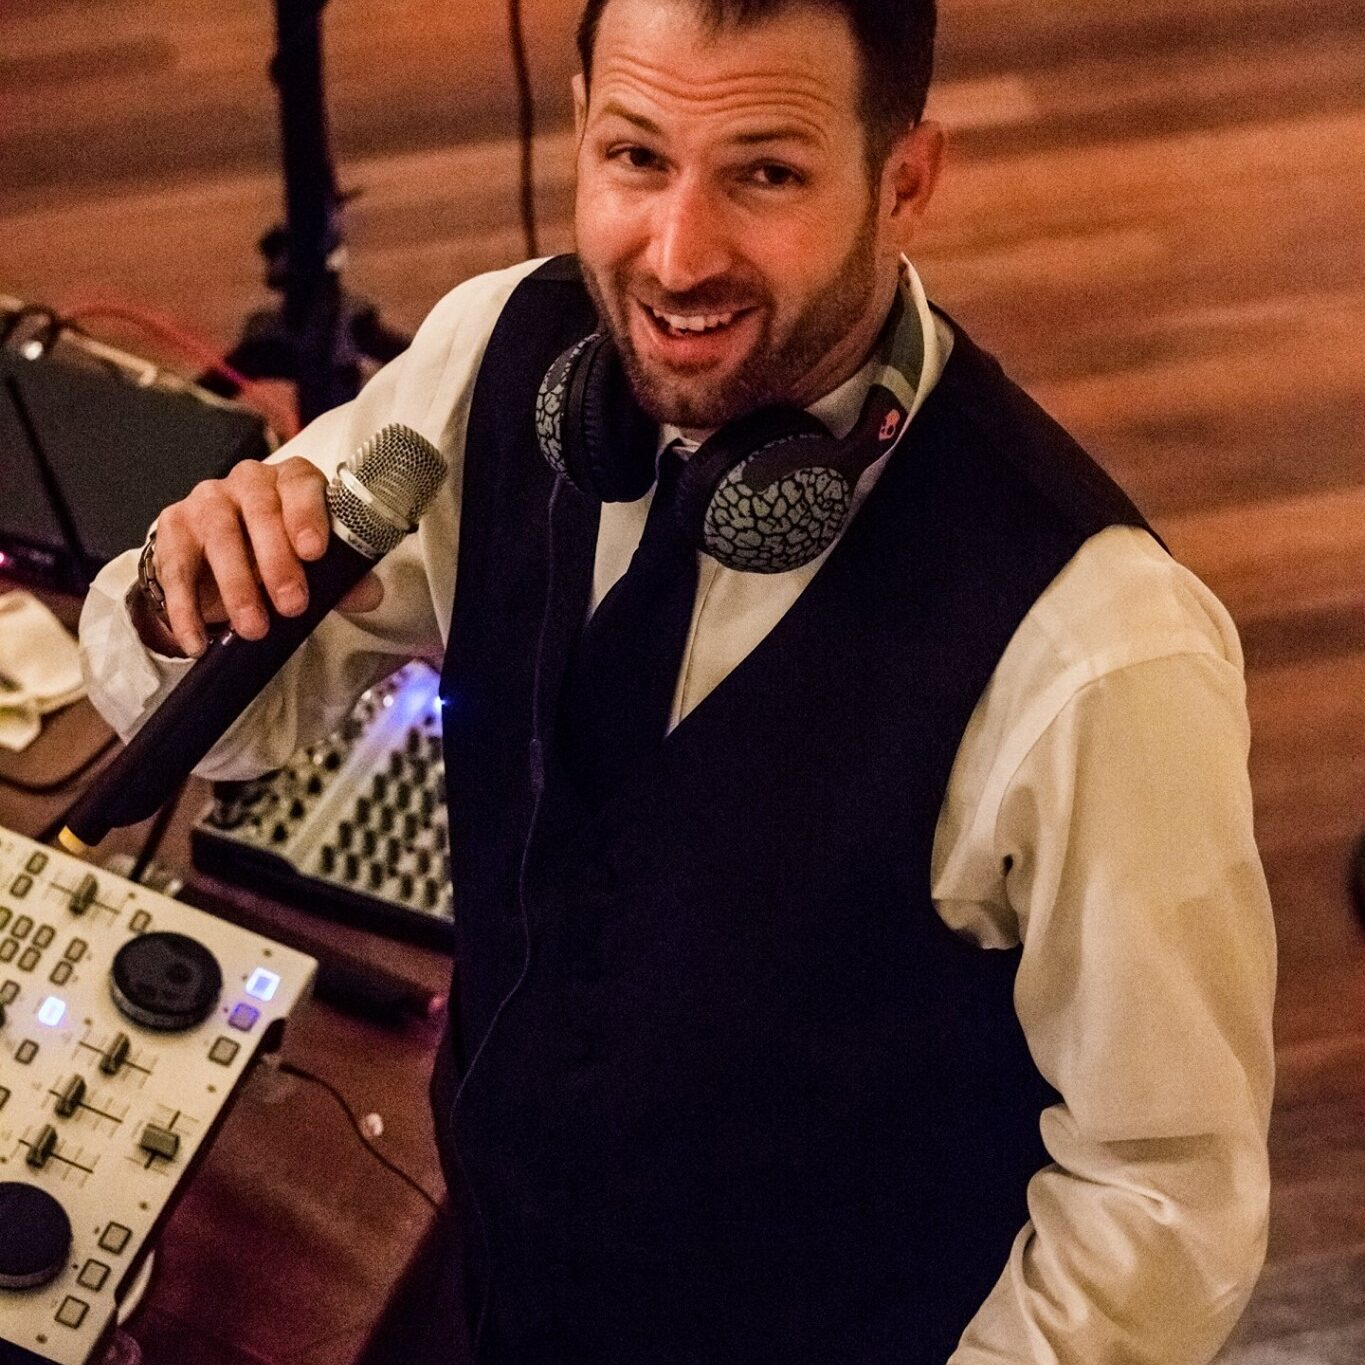 Firefly Entertainment DJ Services will help you have a smooth evening by helping coordinate your wedding music and reception.